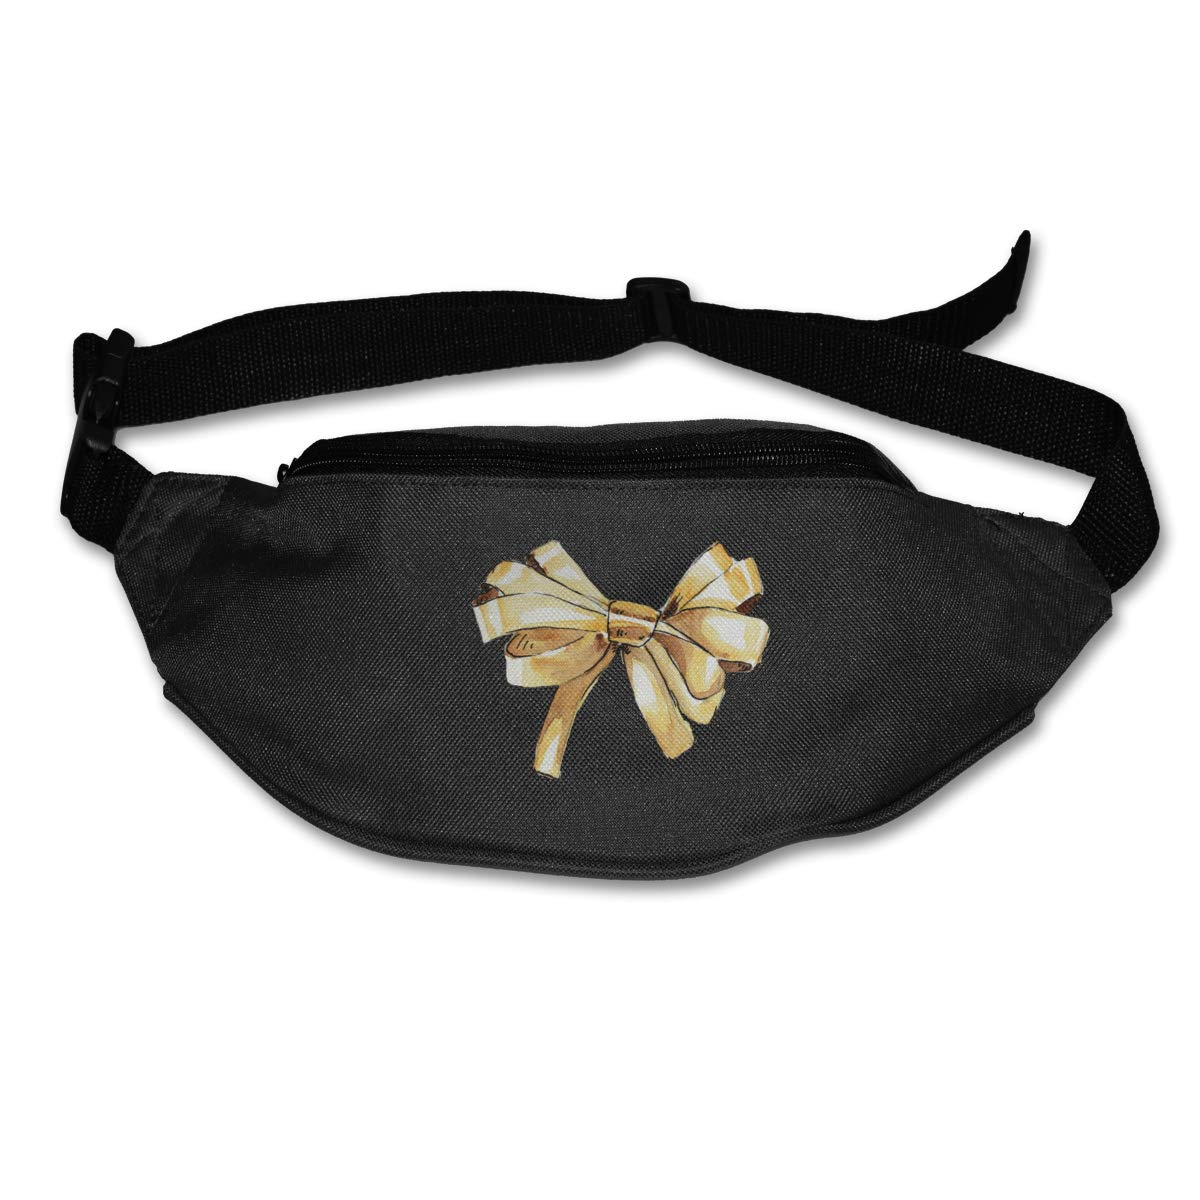 Gold Bow Sport Waist Bag Fanny Pack Adjustable For Run